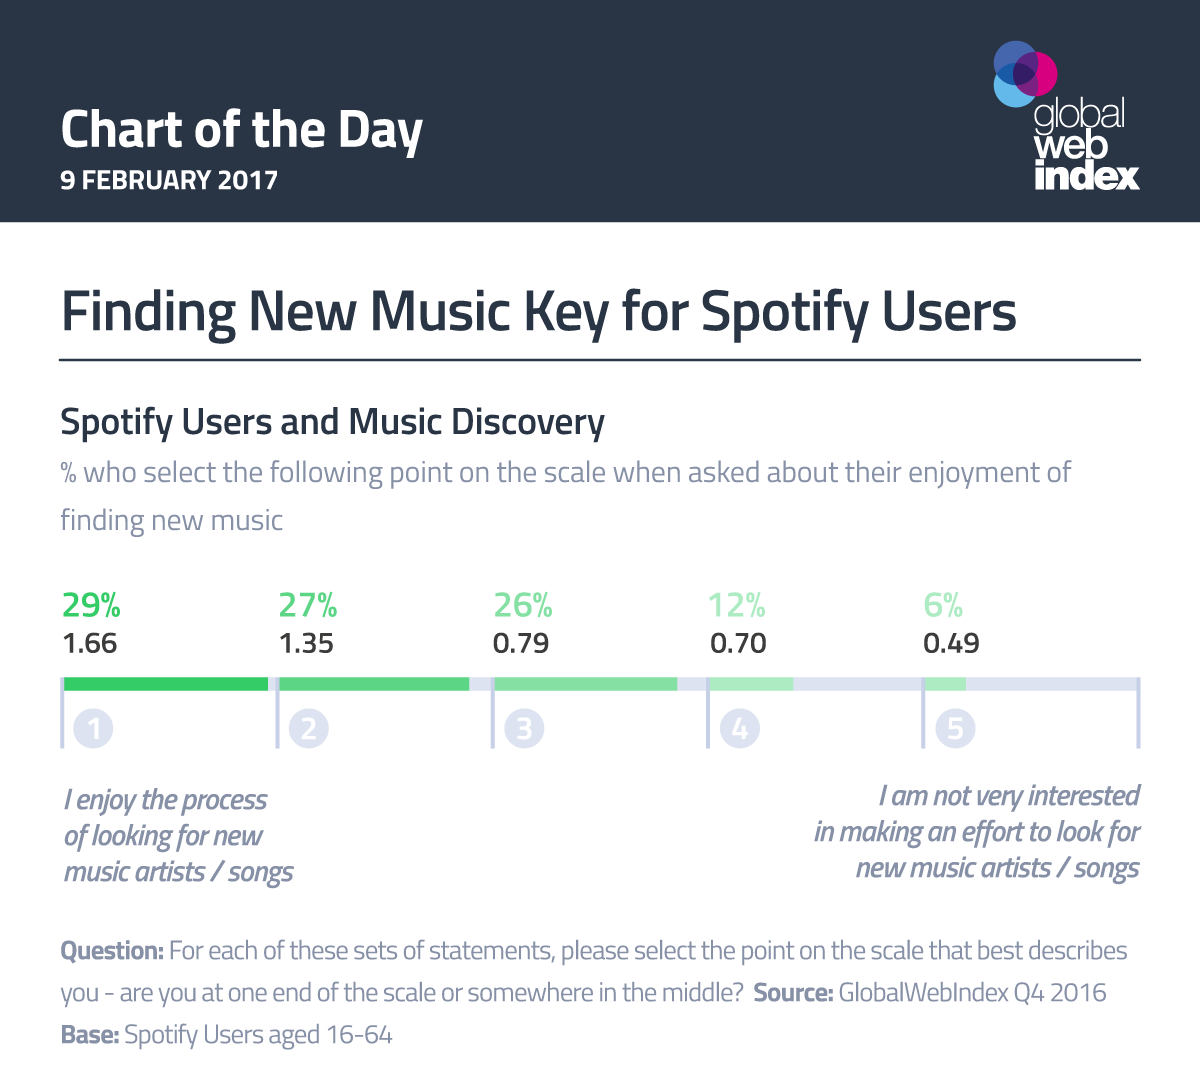 Finding New Music Key for Spotify Users